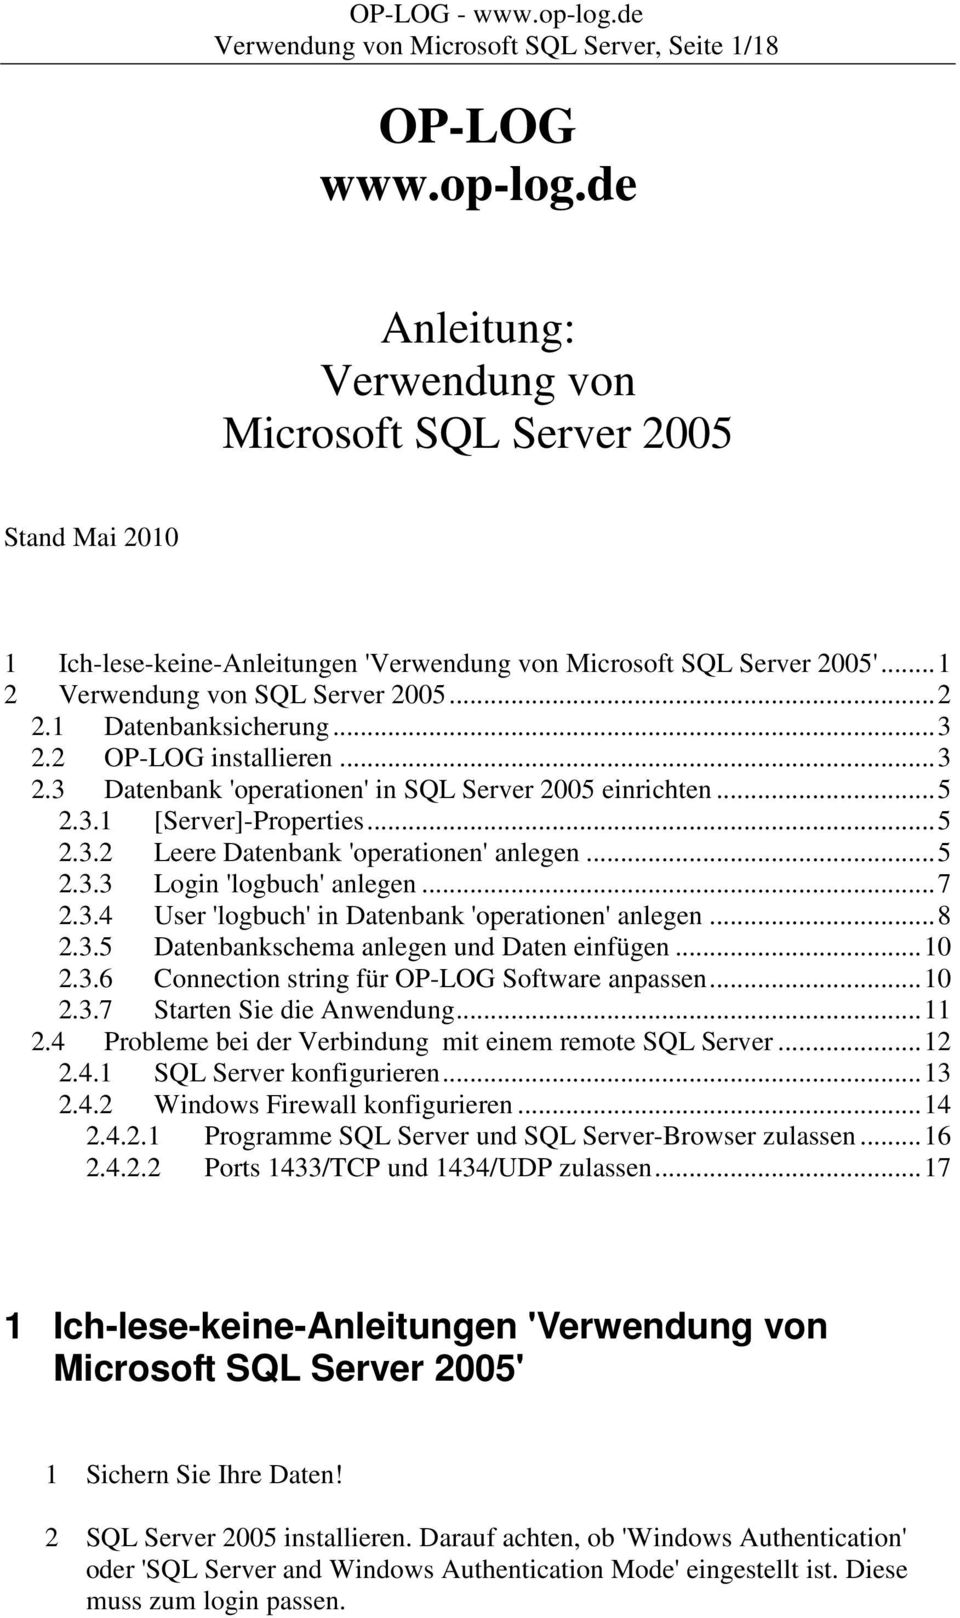 1 Datenbanksicherung...3 2.2 OP-LOG installieren...3 2.3 Datenbank 'operationen' in SQL Server 2005 einrichten...5 2.3.1 [Server]-Properties...5 2.3.2 Leere Datenbank 'operationen' anlegen...5 2.3.3 Login 'logbuch' anlegen.